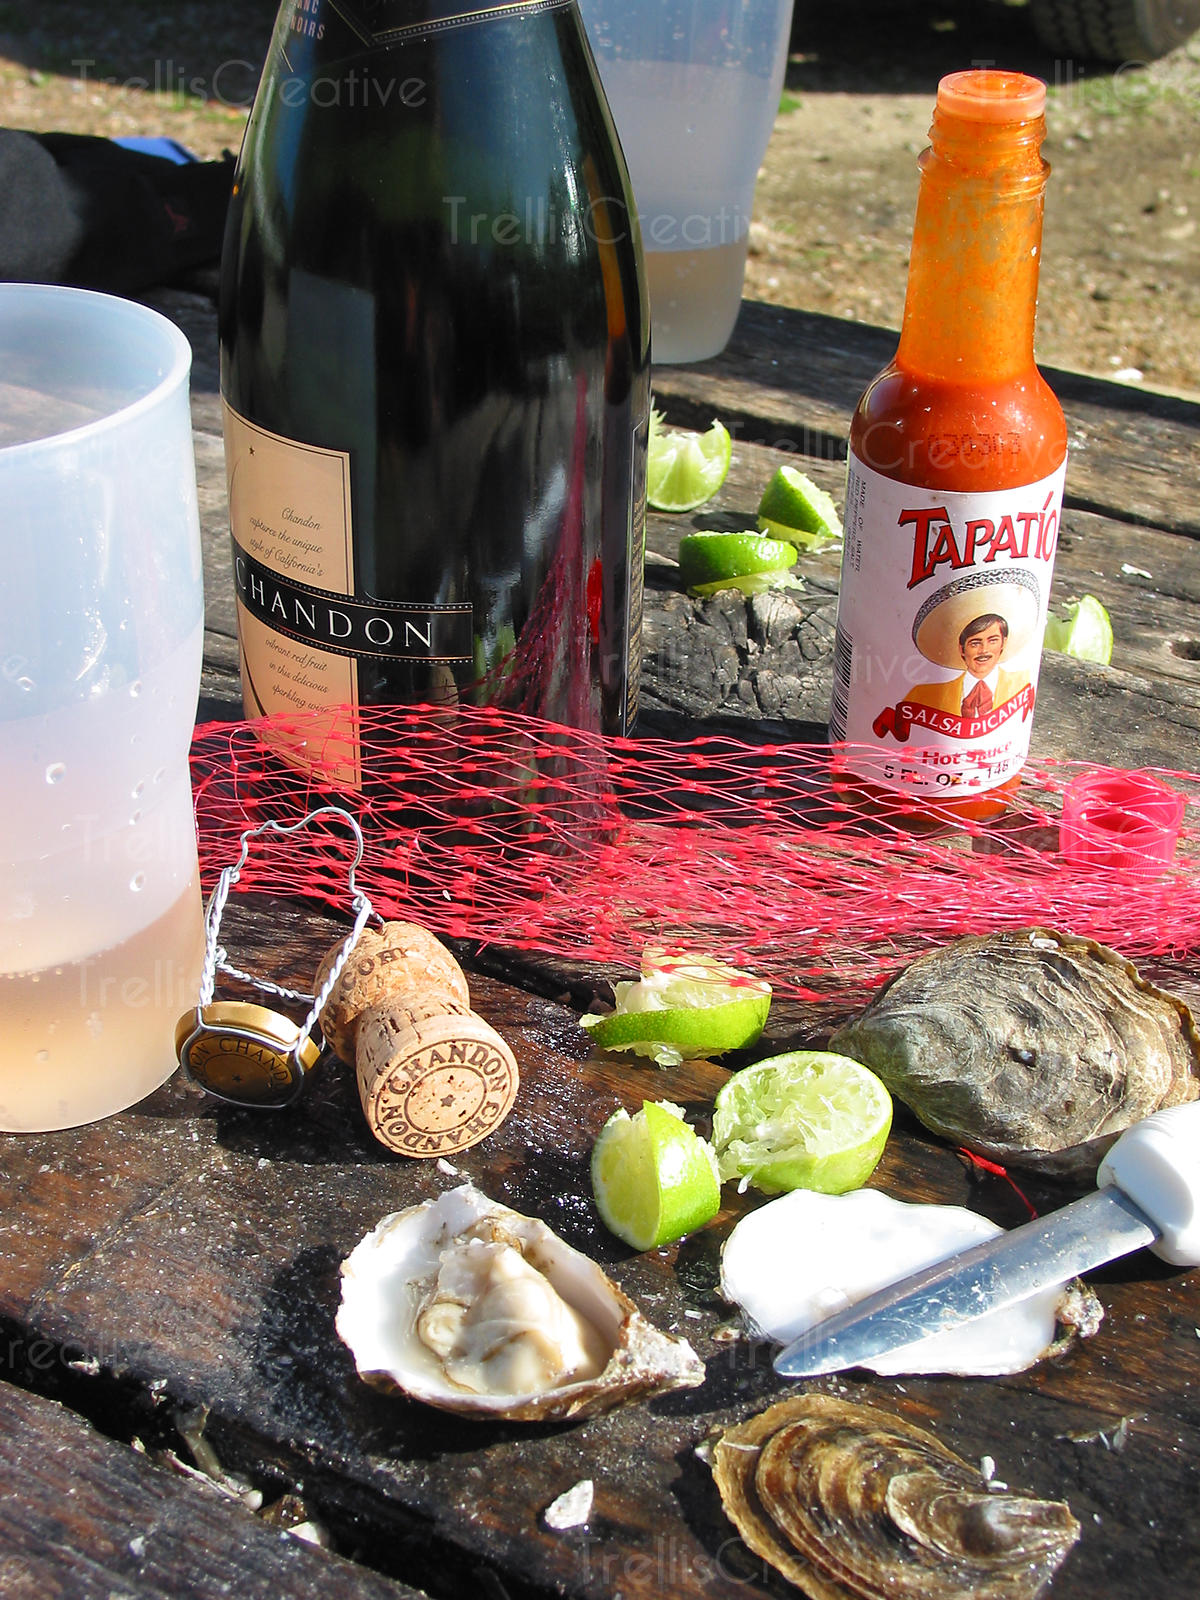 Shucked oysters and sparkling wine on a picnic table